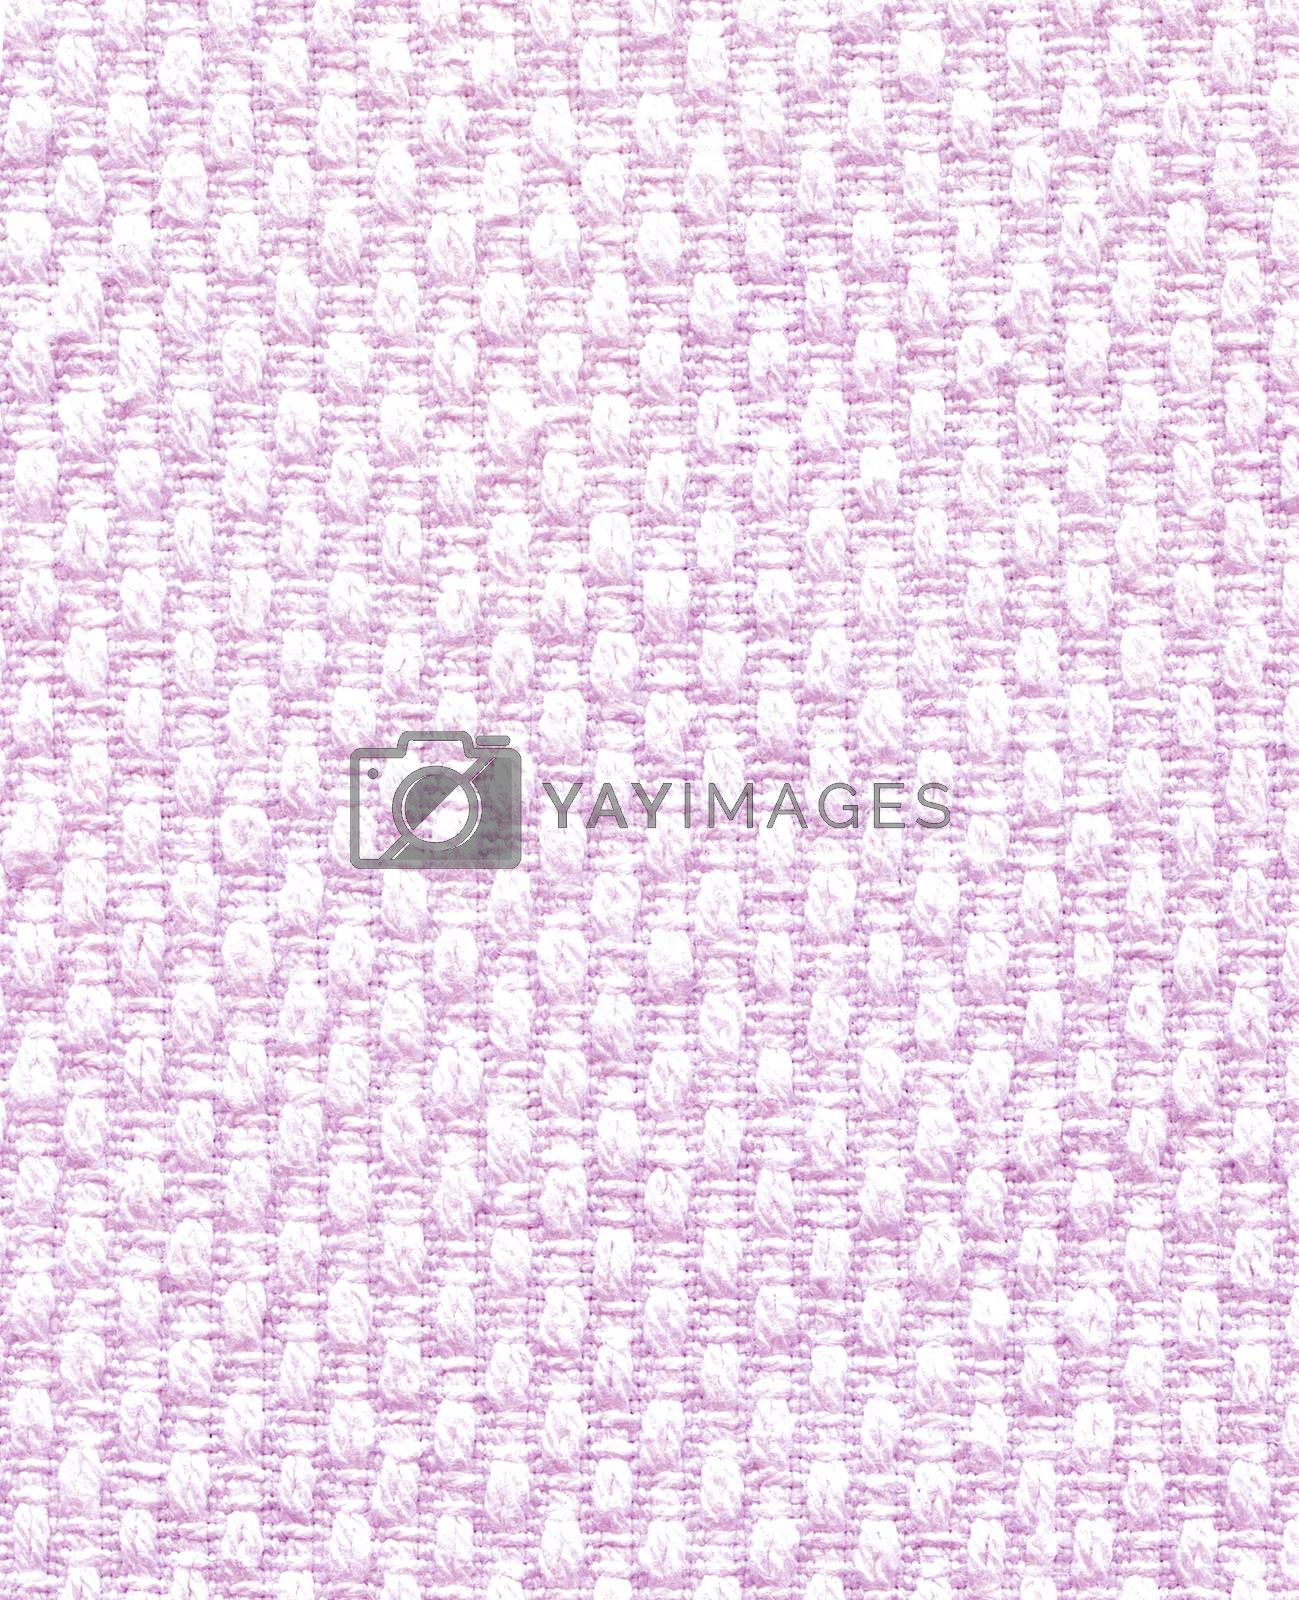 Fabric texture, soft light pink cotton pattern